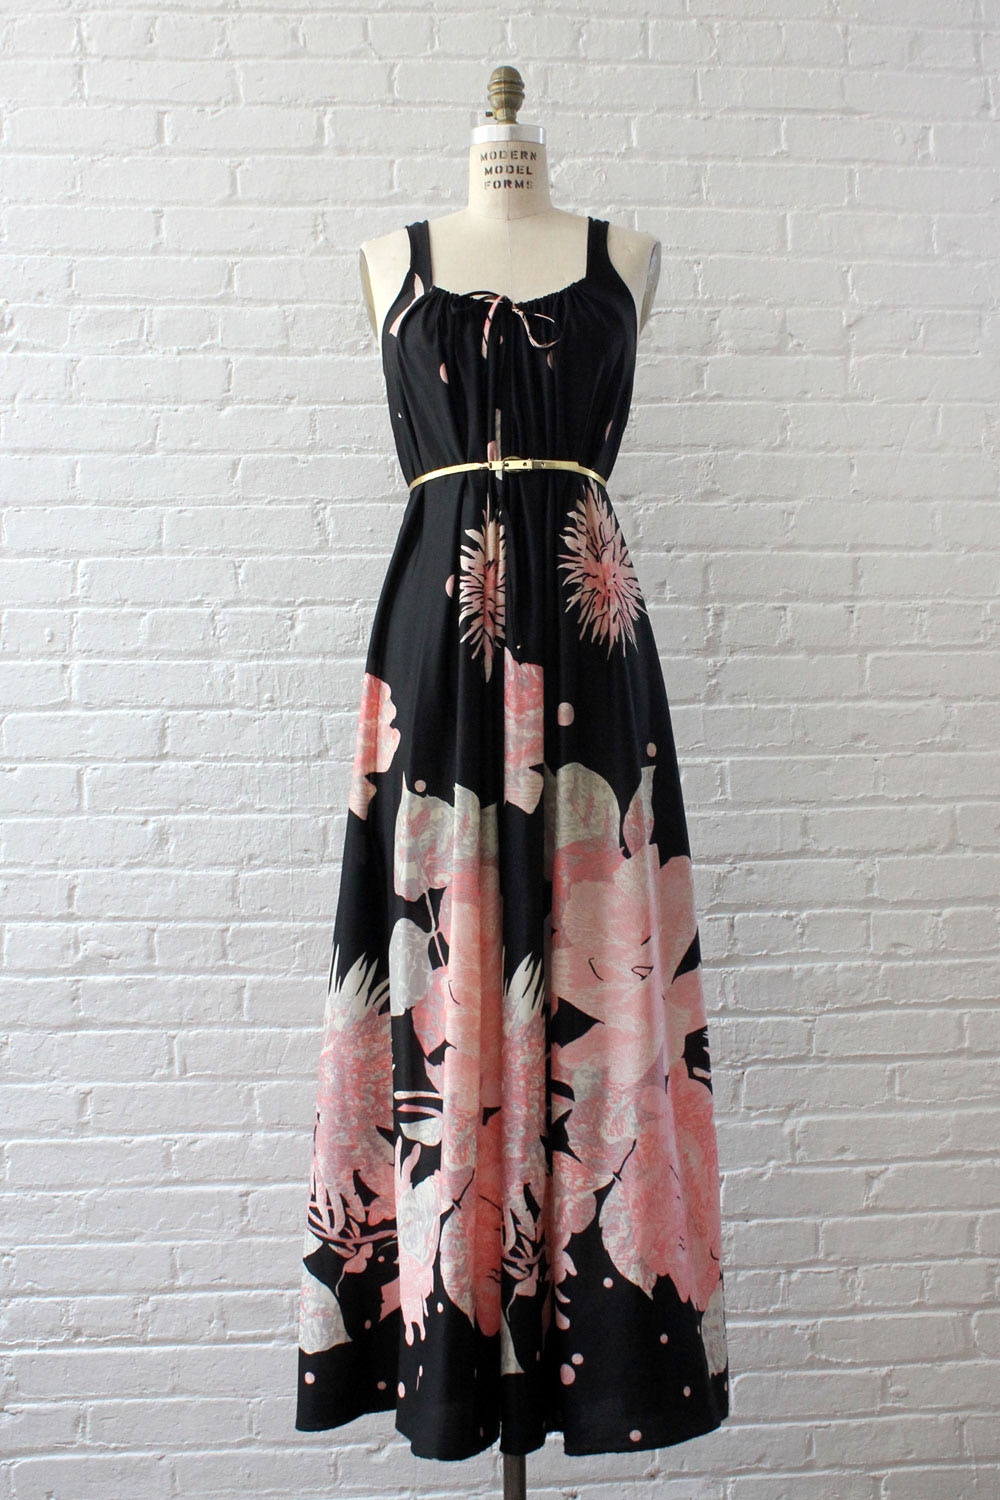 Blooming Full Sweep Dress S-L